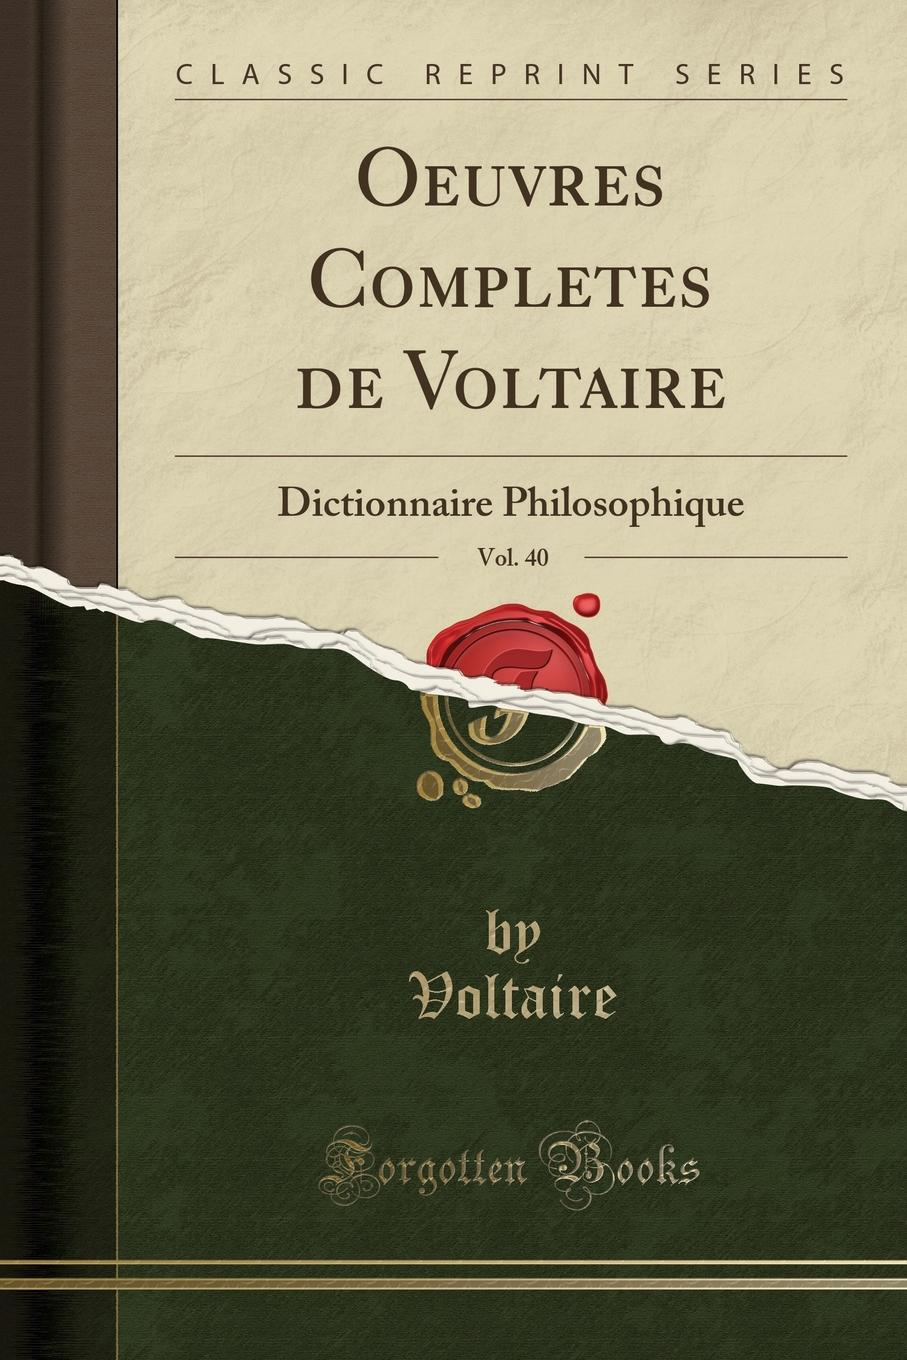 Voltaire Voltaire Oeuvres Completes de Voltaire, Vol. 40. Dictionnaire Philosophique (Classic Reprint) gzeele new for lenovo for thinkpad t440s t440p e431 t431s e440 l440 t450 russian ru laptop keyboard with backlight backlit black